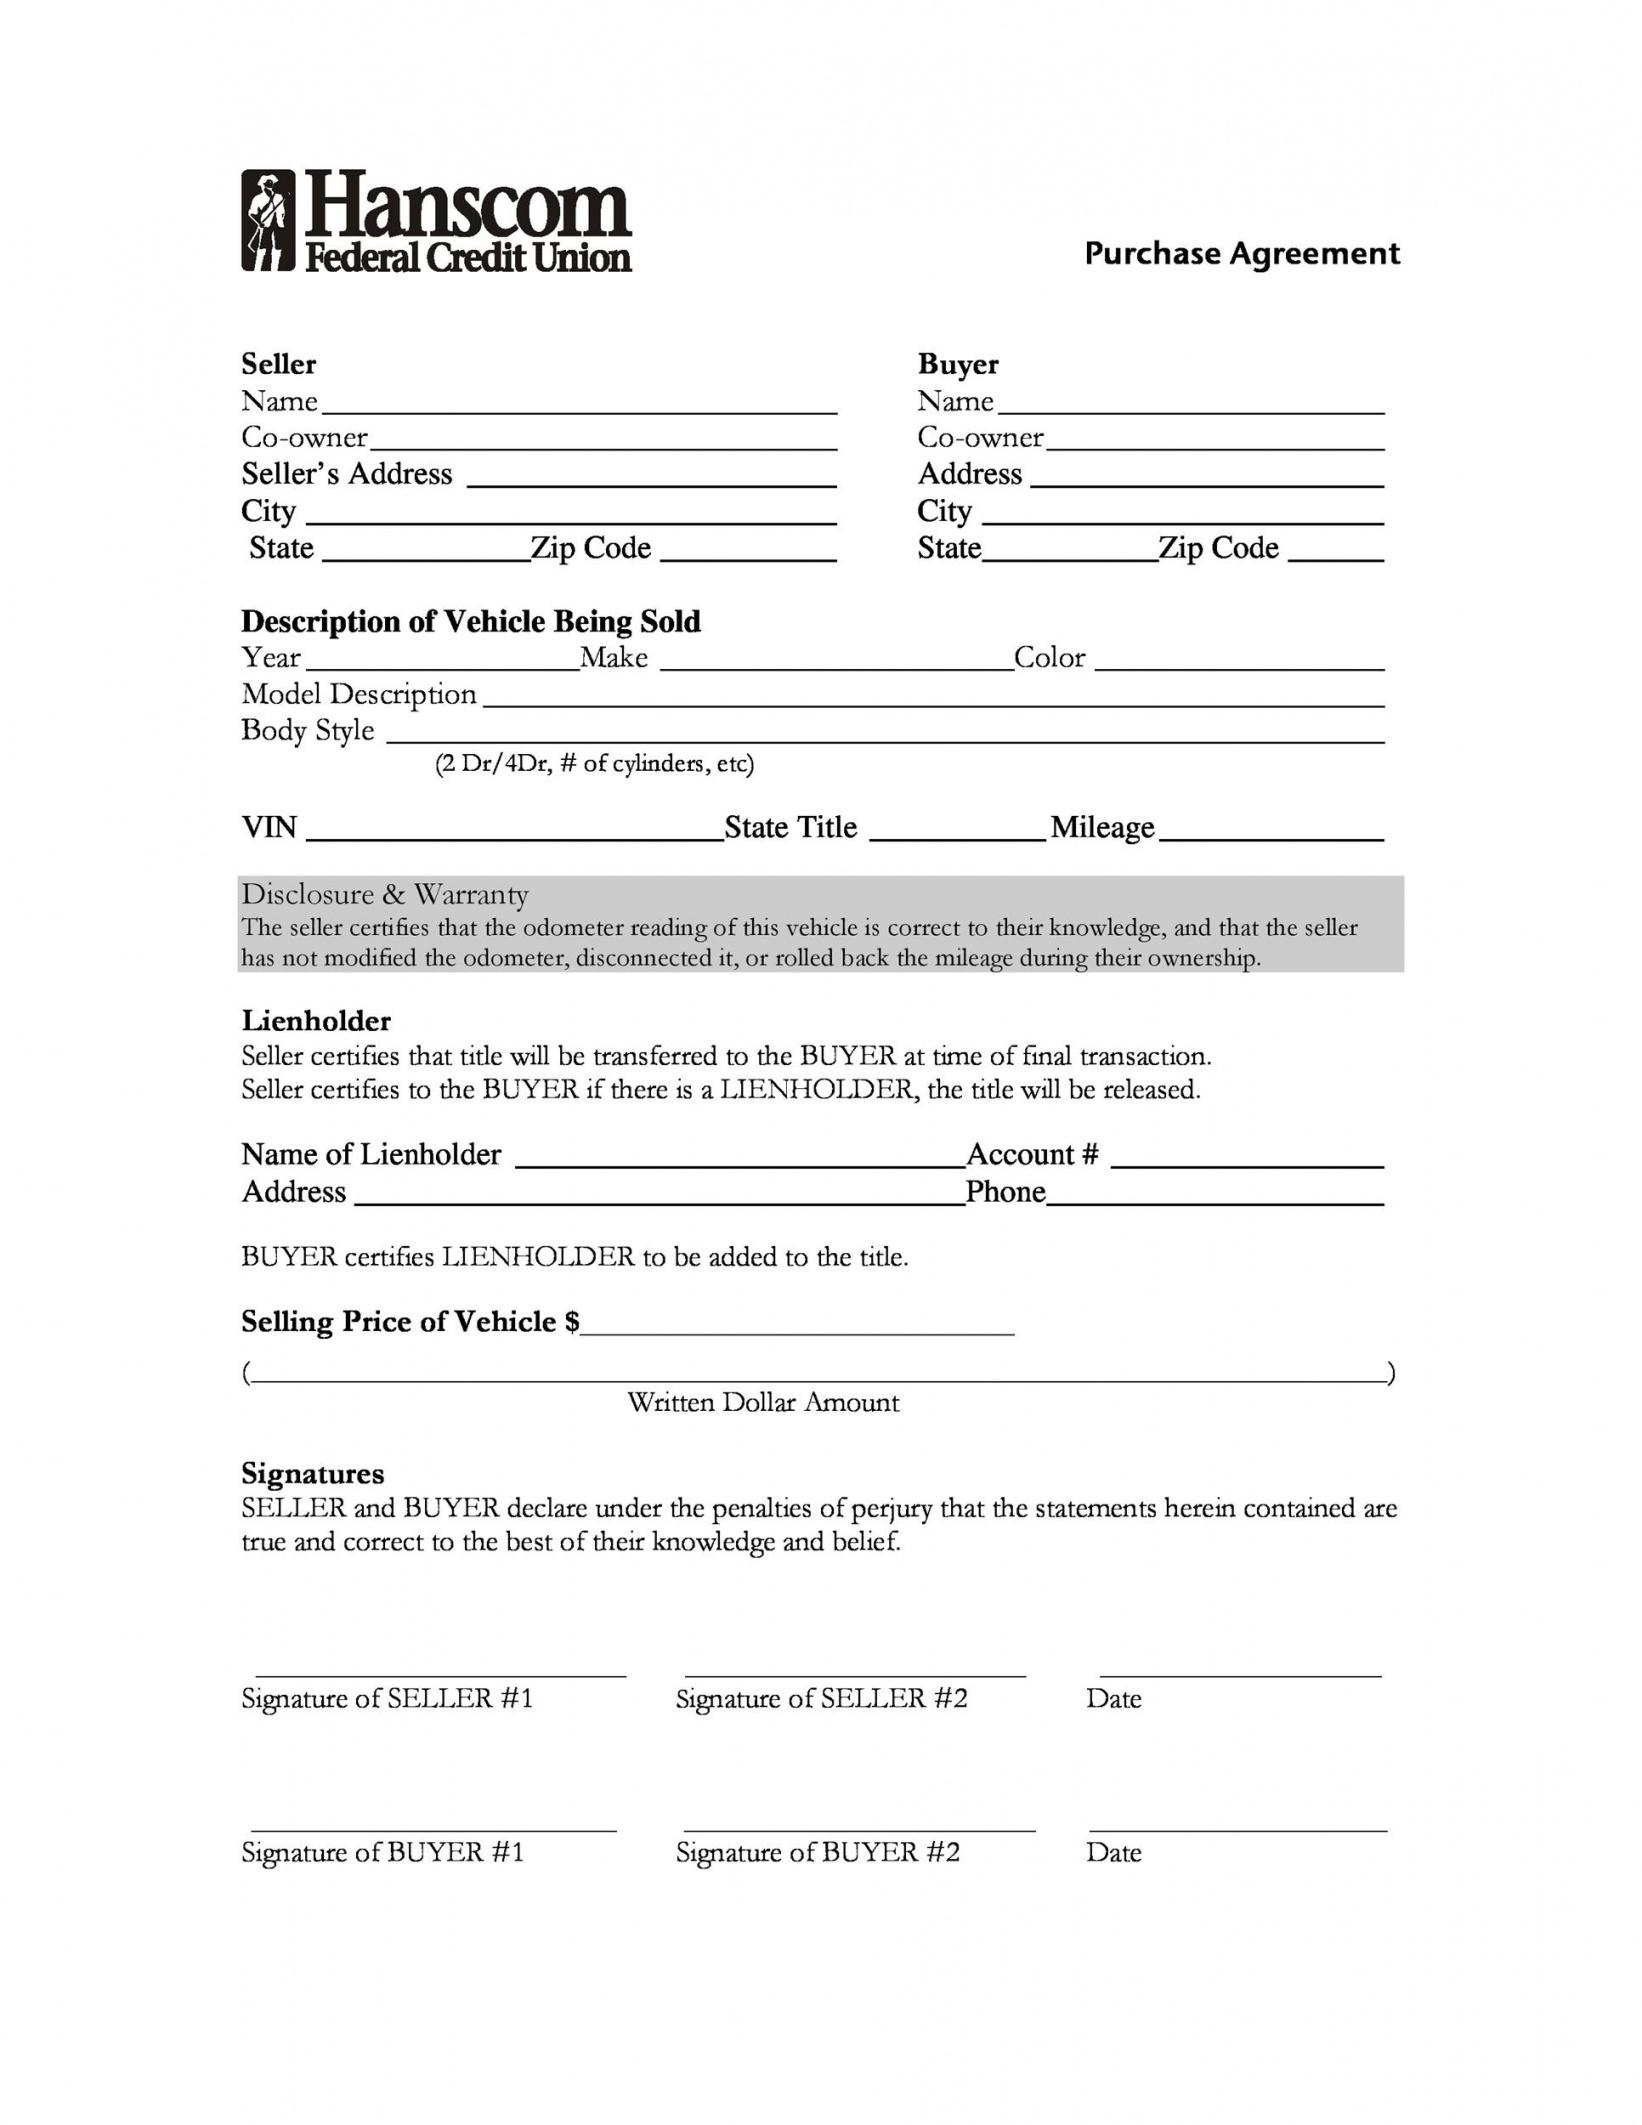 42 printable vehicle purchase agreement templates  templatelab car lease to own contract template example